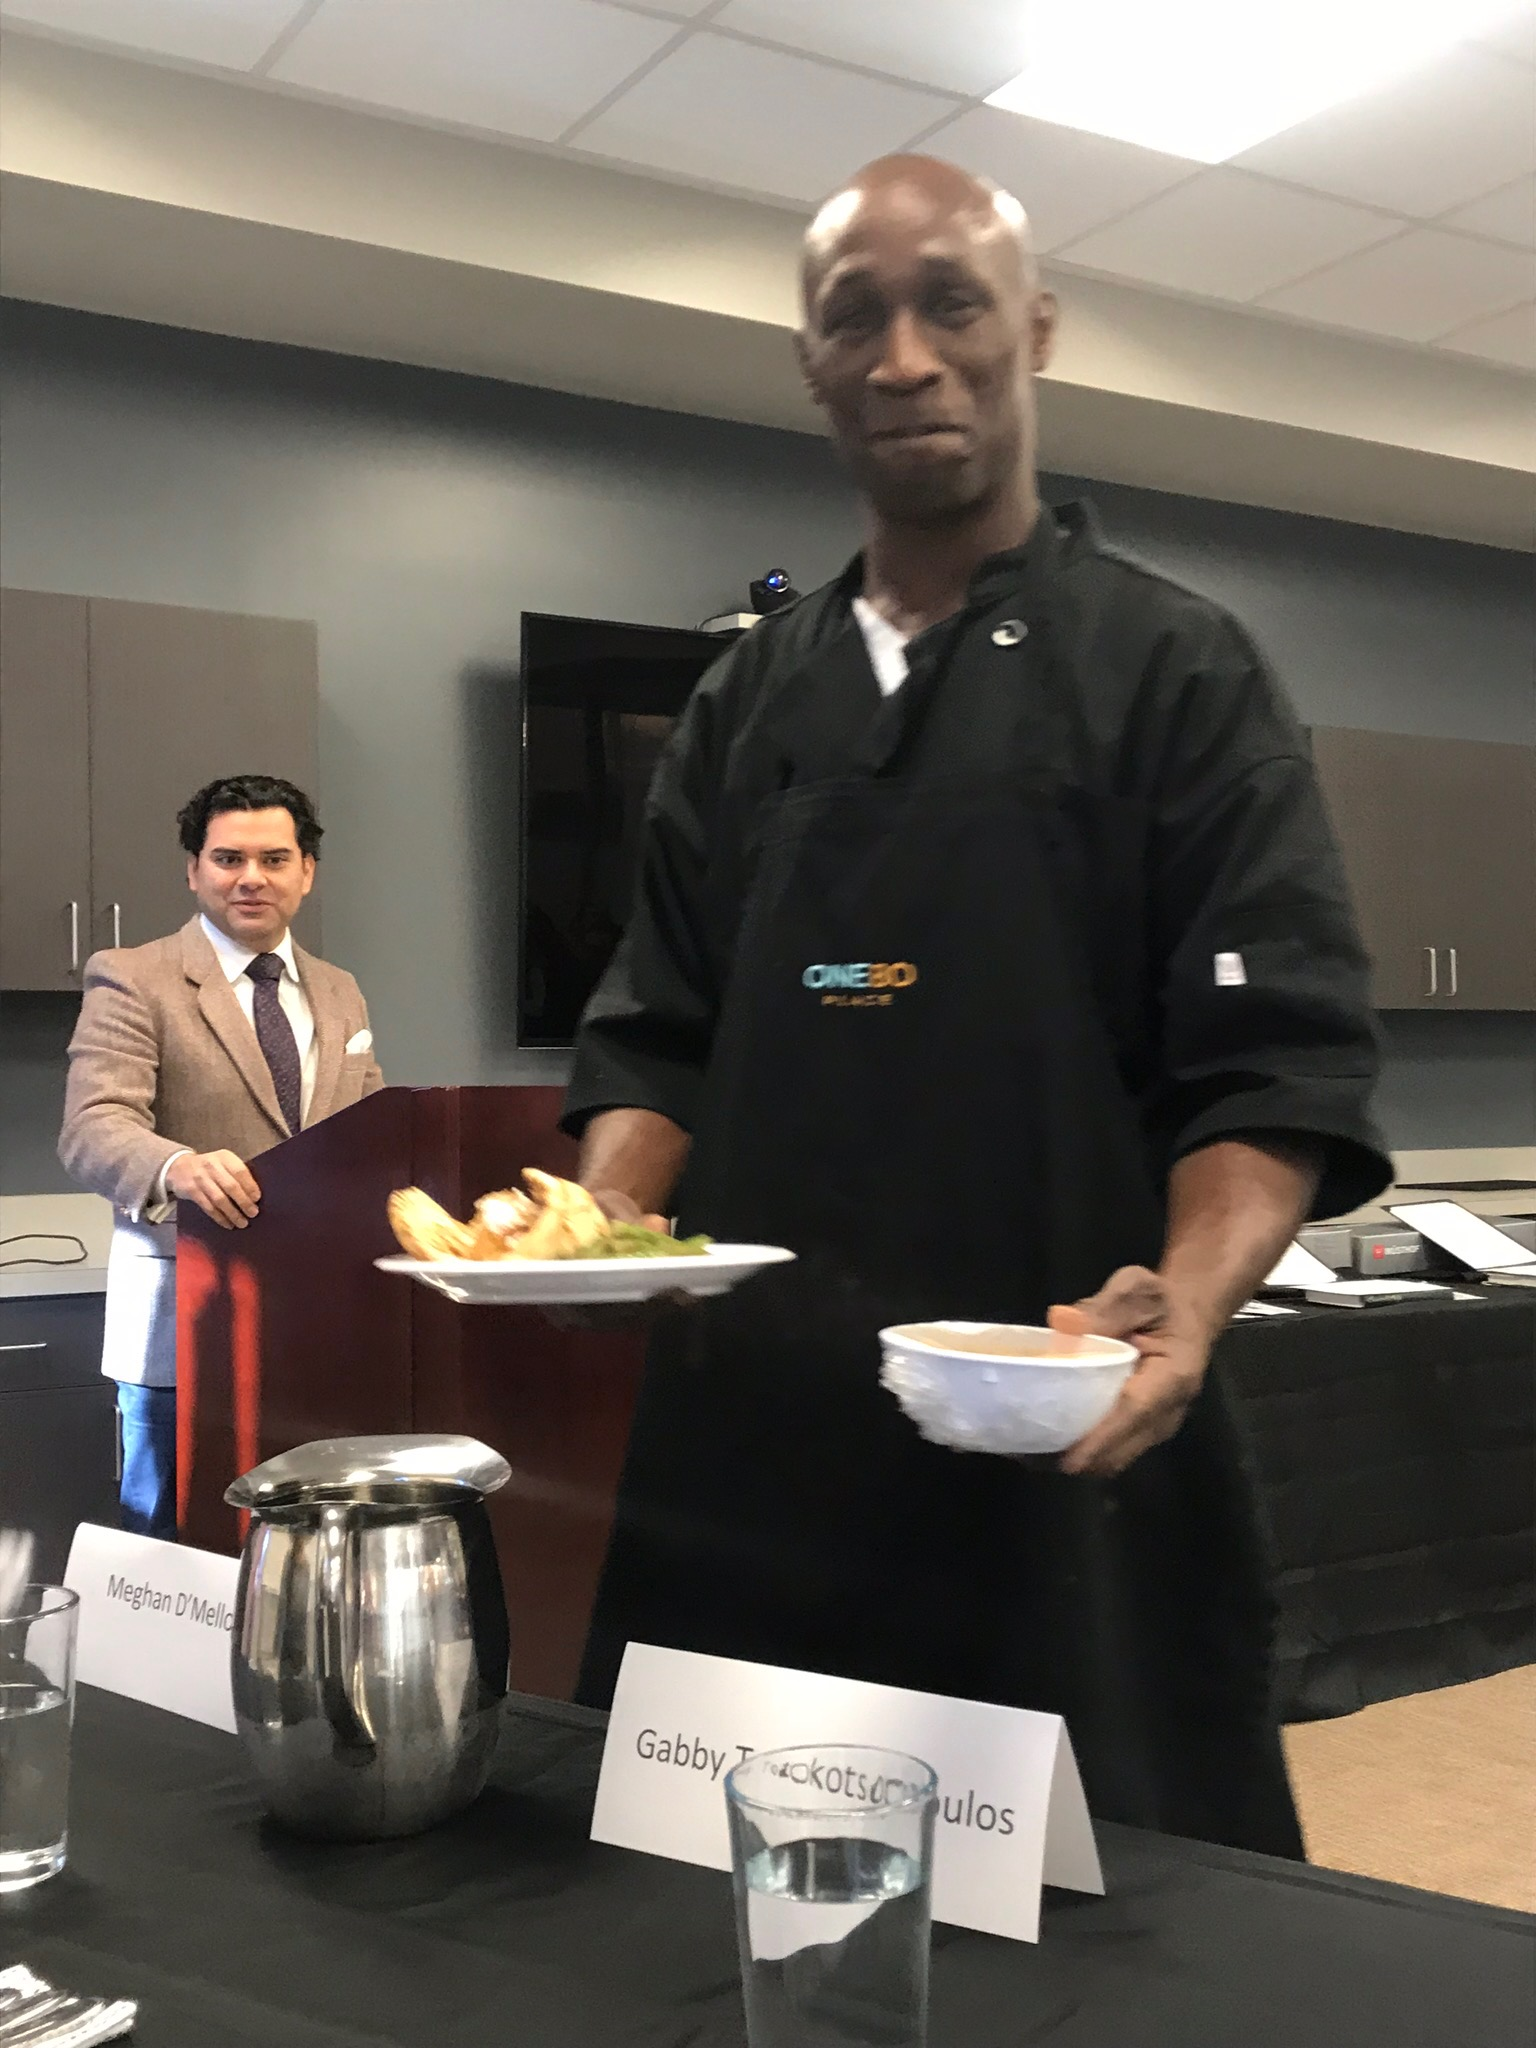 A new chef presents his dishes at One80 Place graduation.